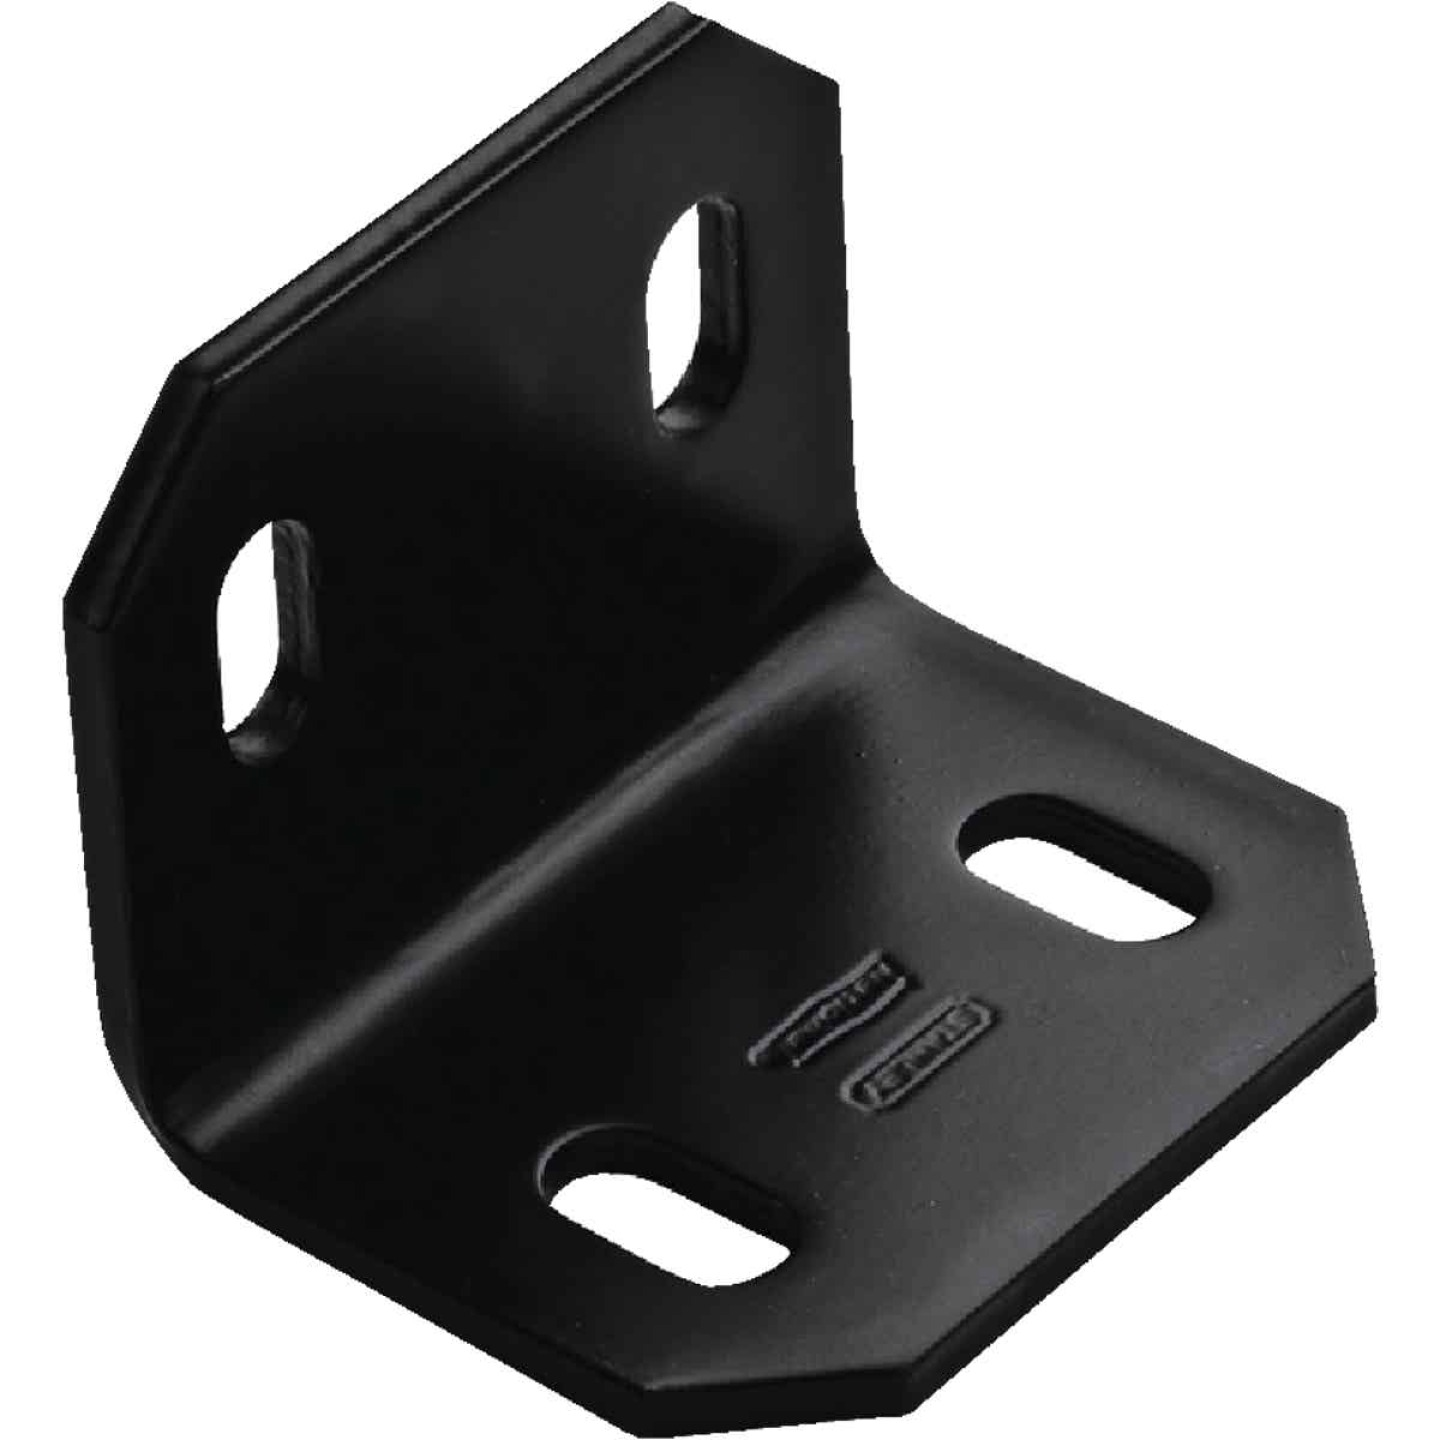 National Catalog 1217BC 2.4 In. x 3 In. x 3/16 In. Heavy Duty Square Corner Brace Image 1